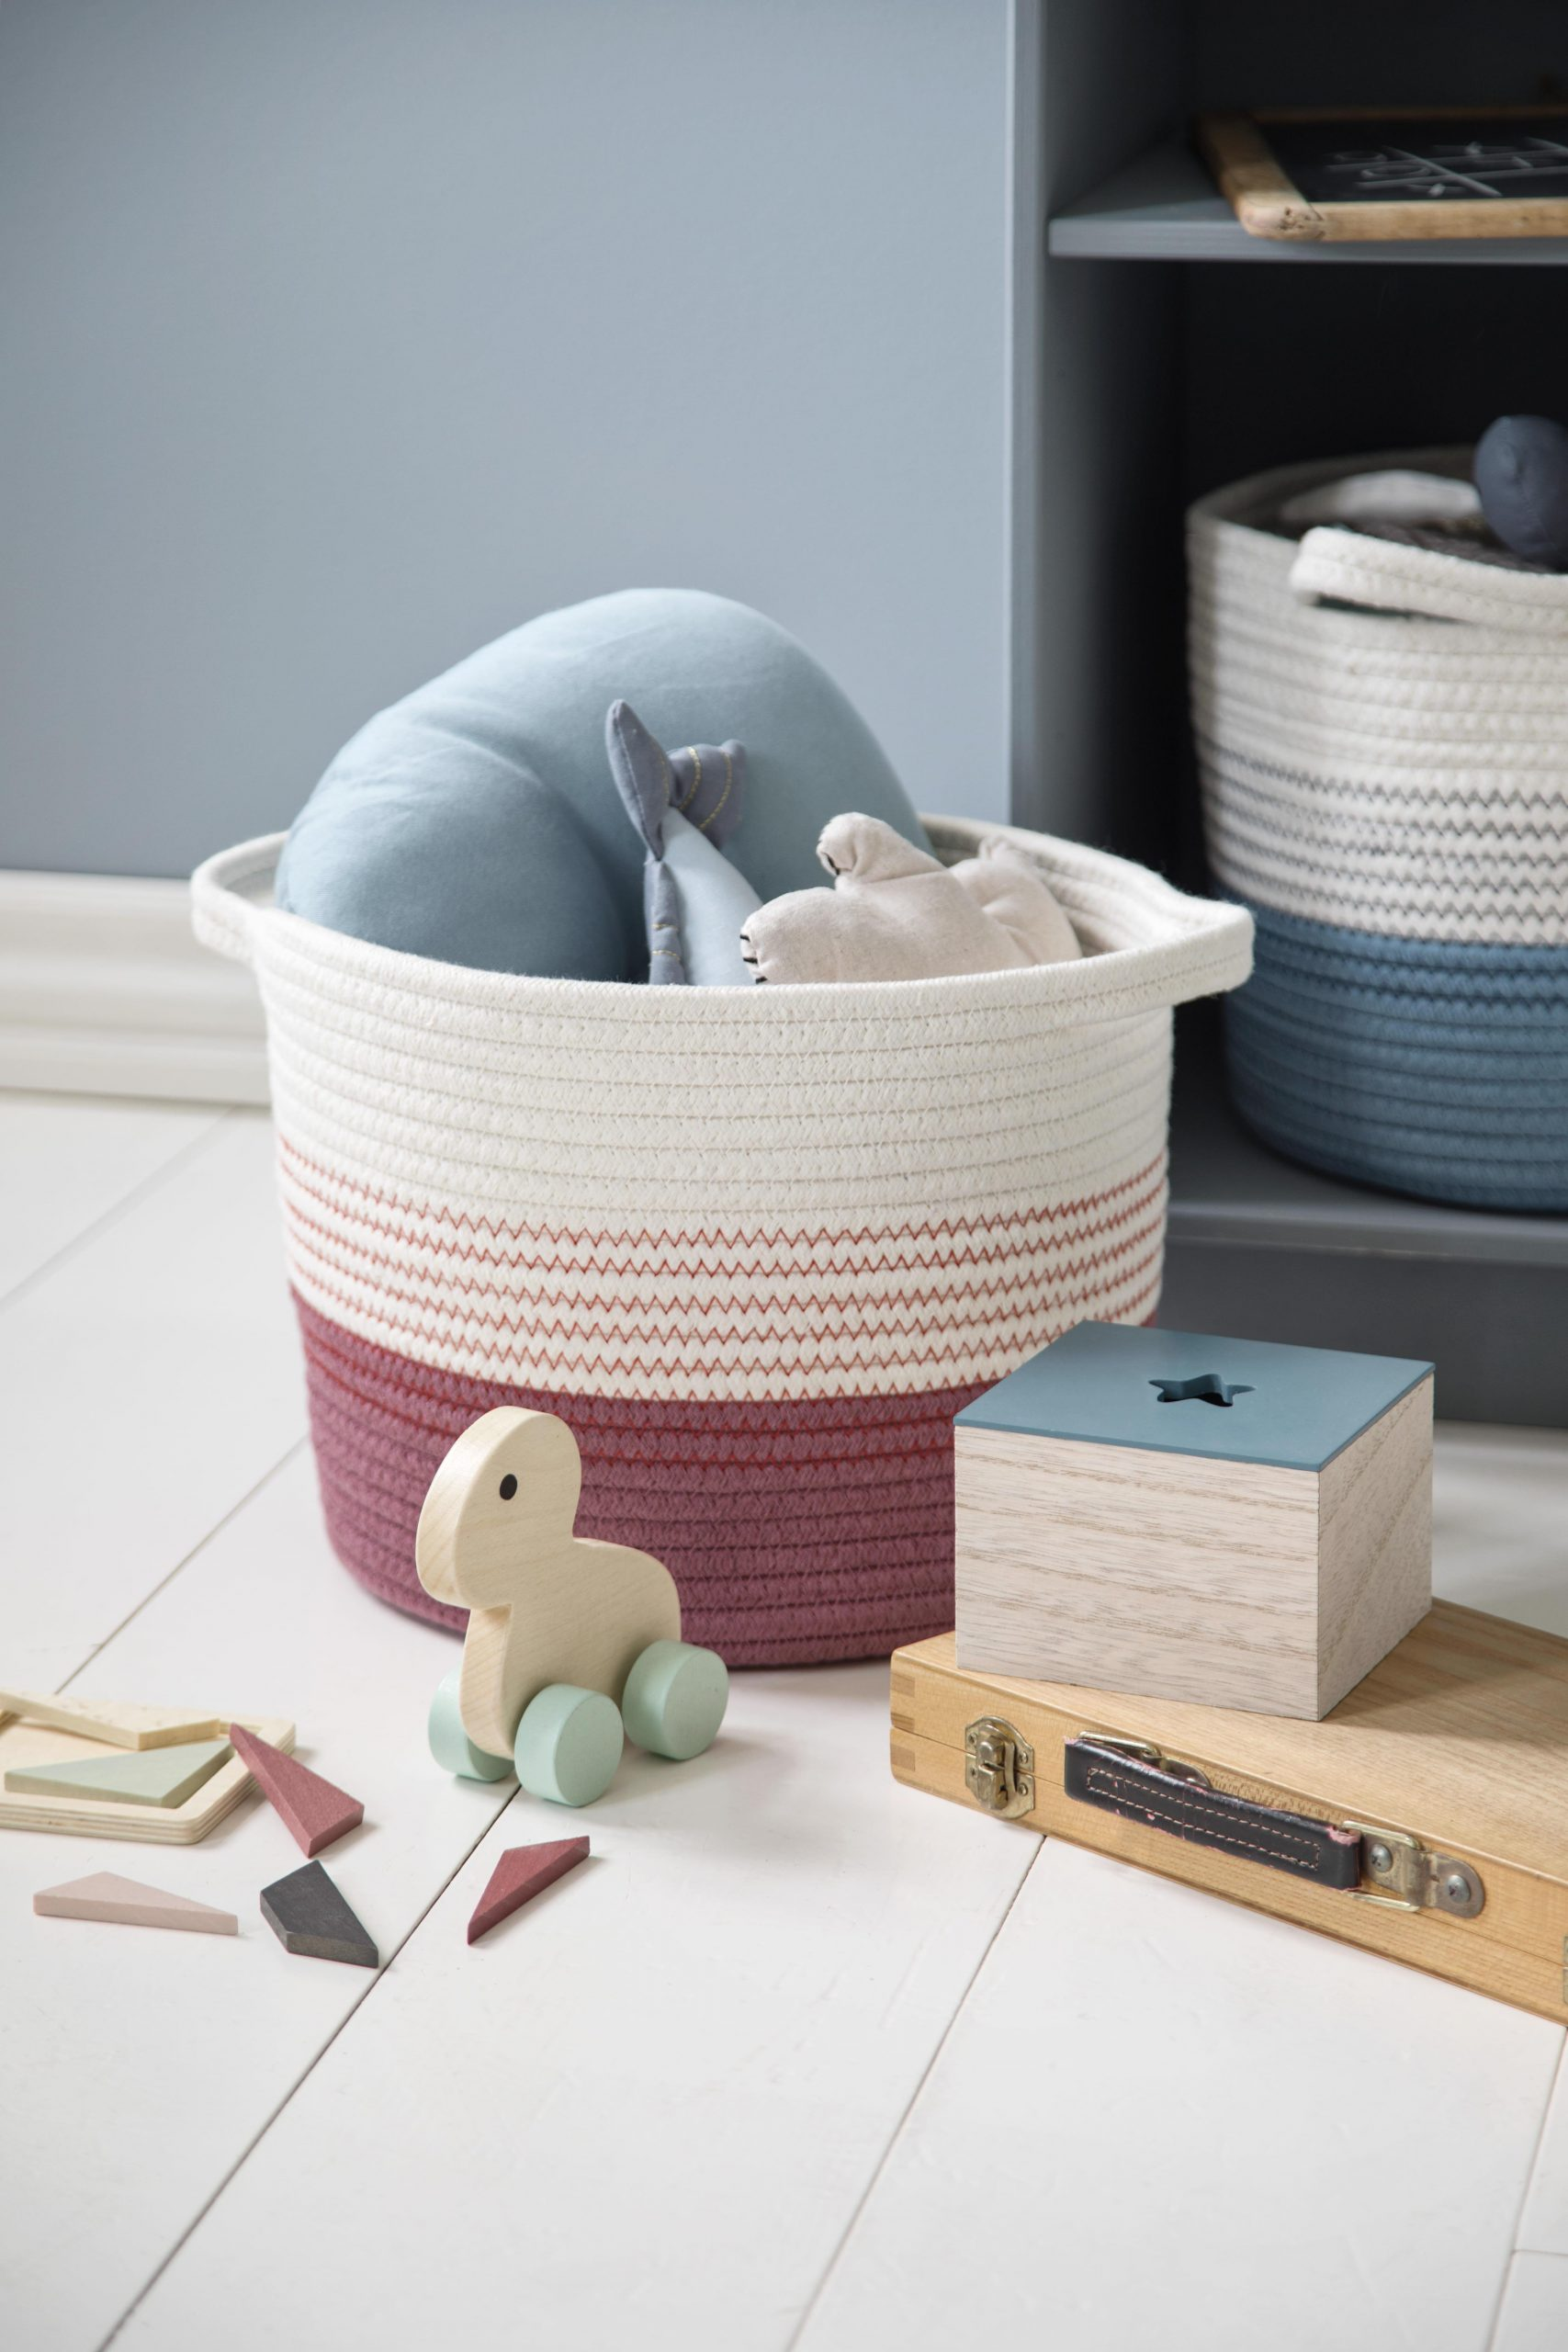 Available 23 April 2020 SostreneGrene 49 min 4480x6720 1 scaled - Sostrene Grene - Kinderinterieur en Speelgoed Collectie 2020